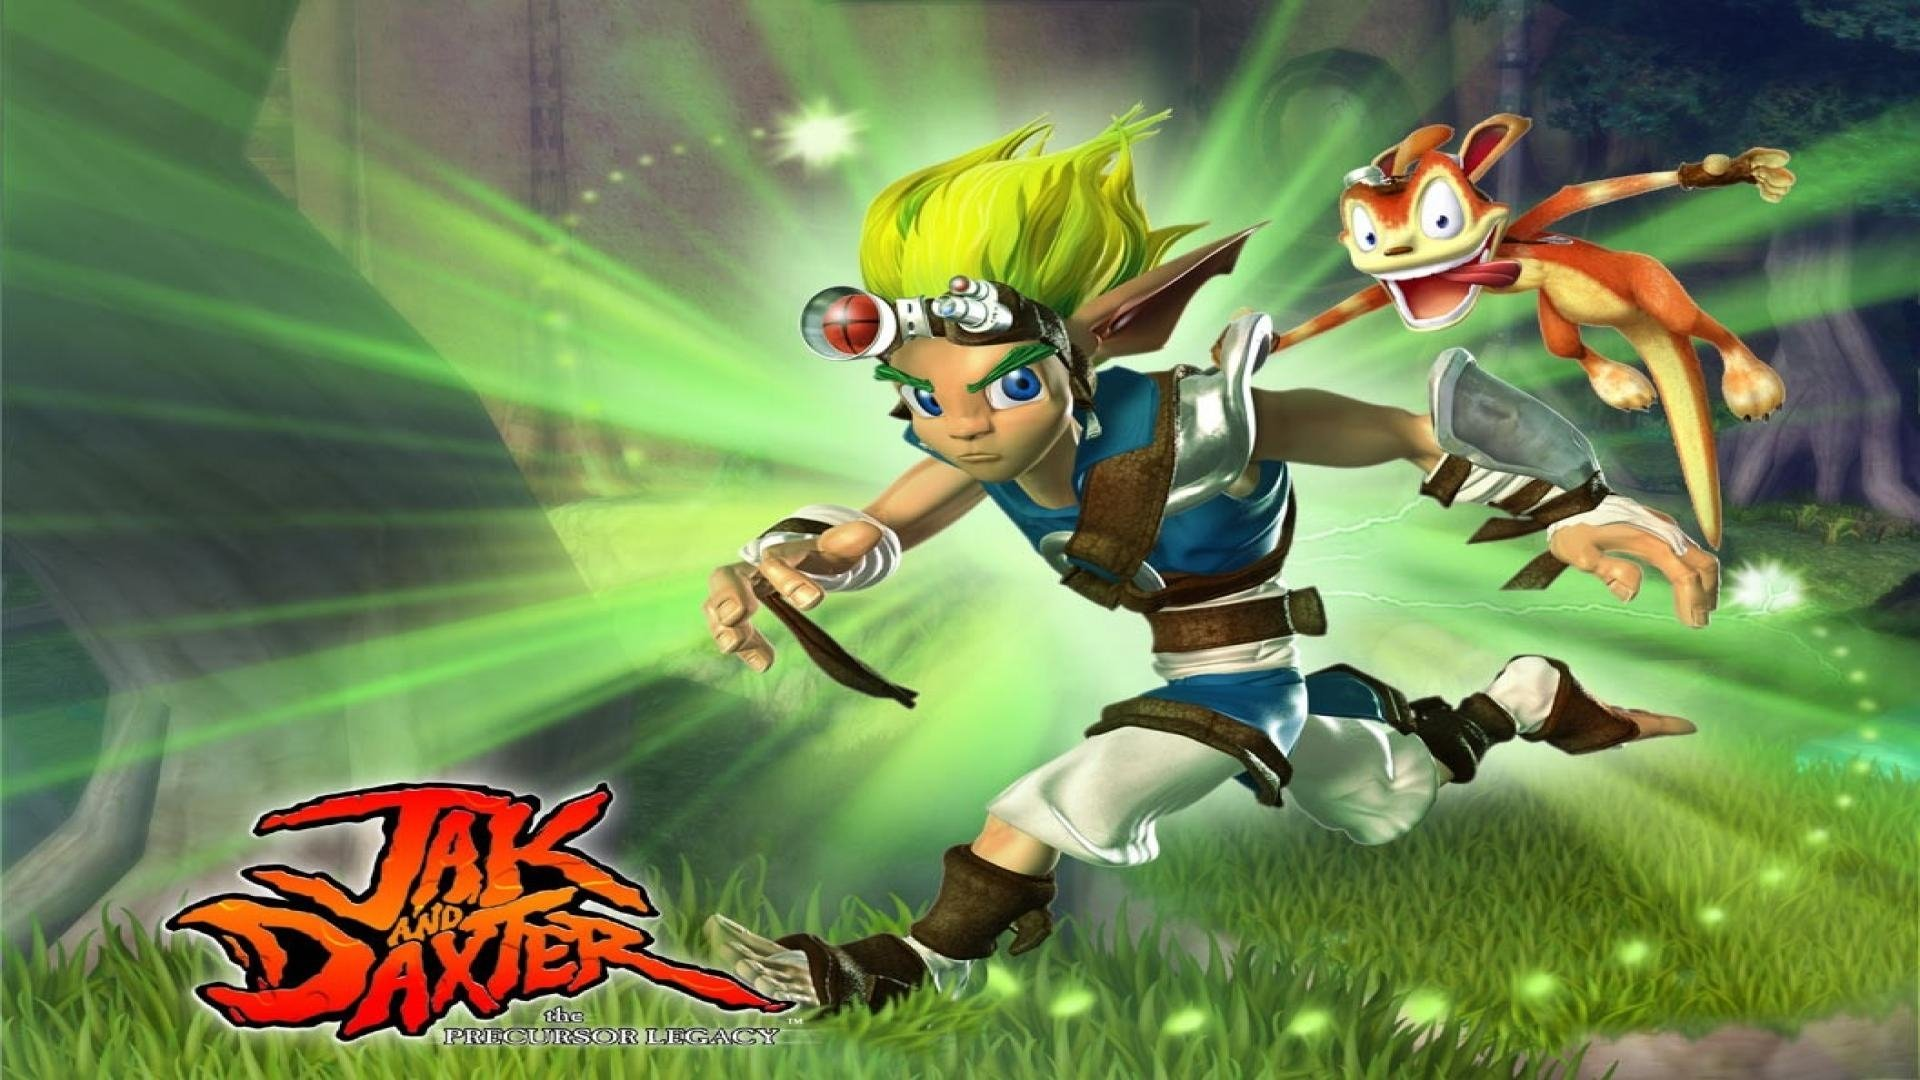 5 Jak And Daxter Hd Wallpapers Background Images Wallpaper Abyss